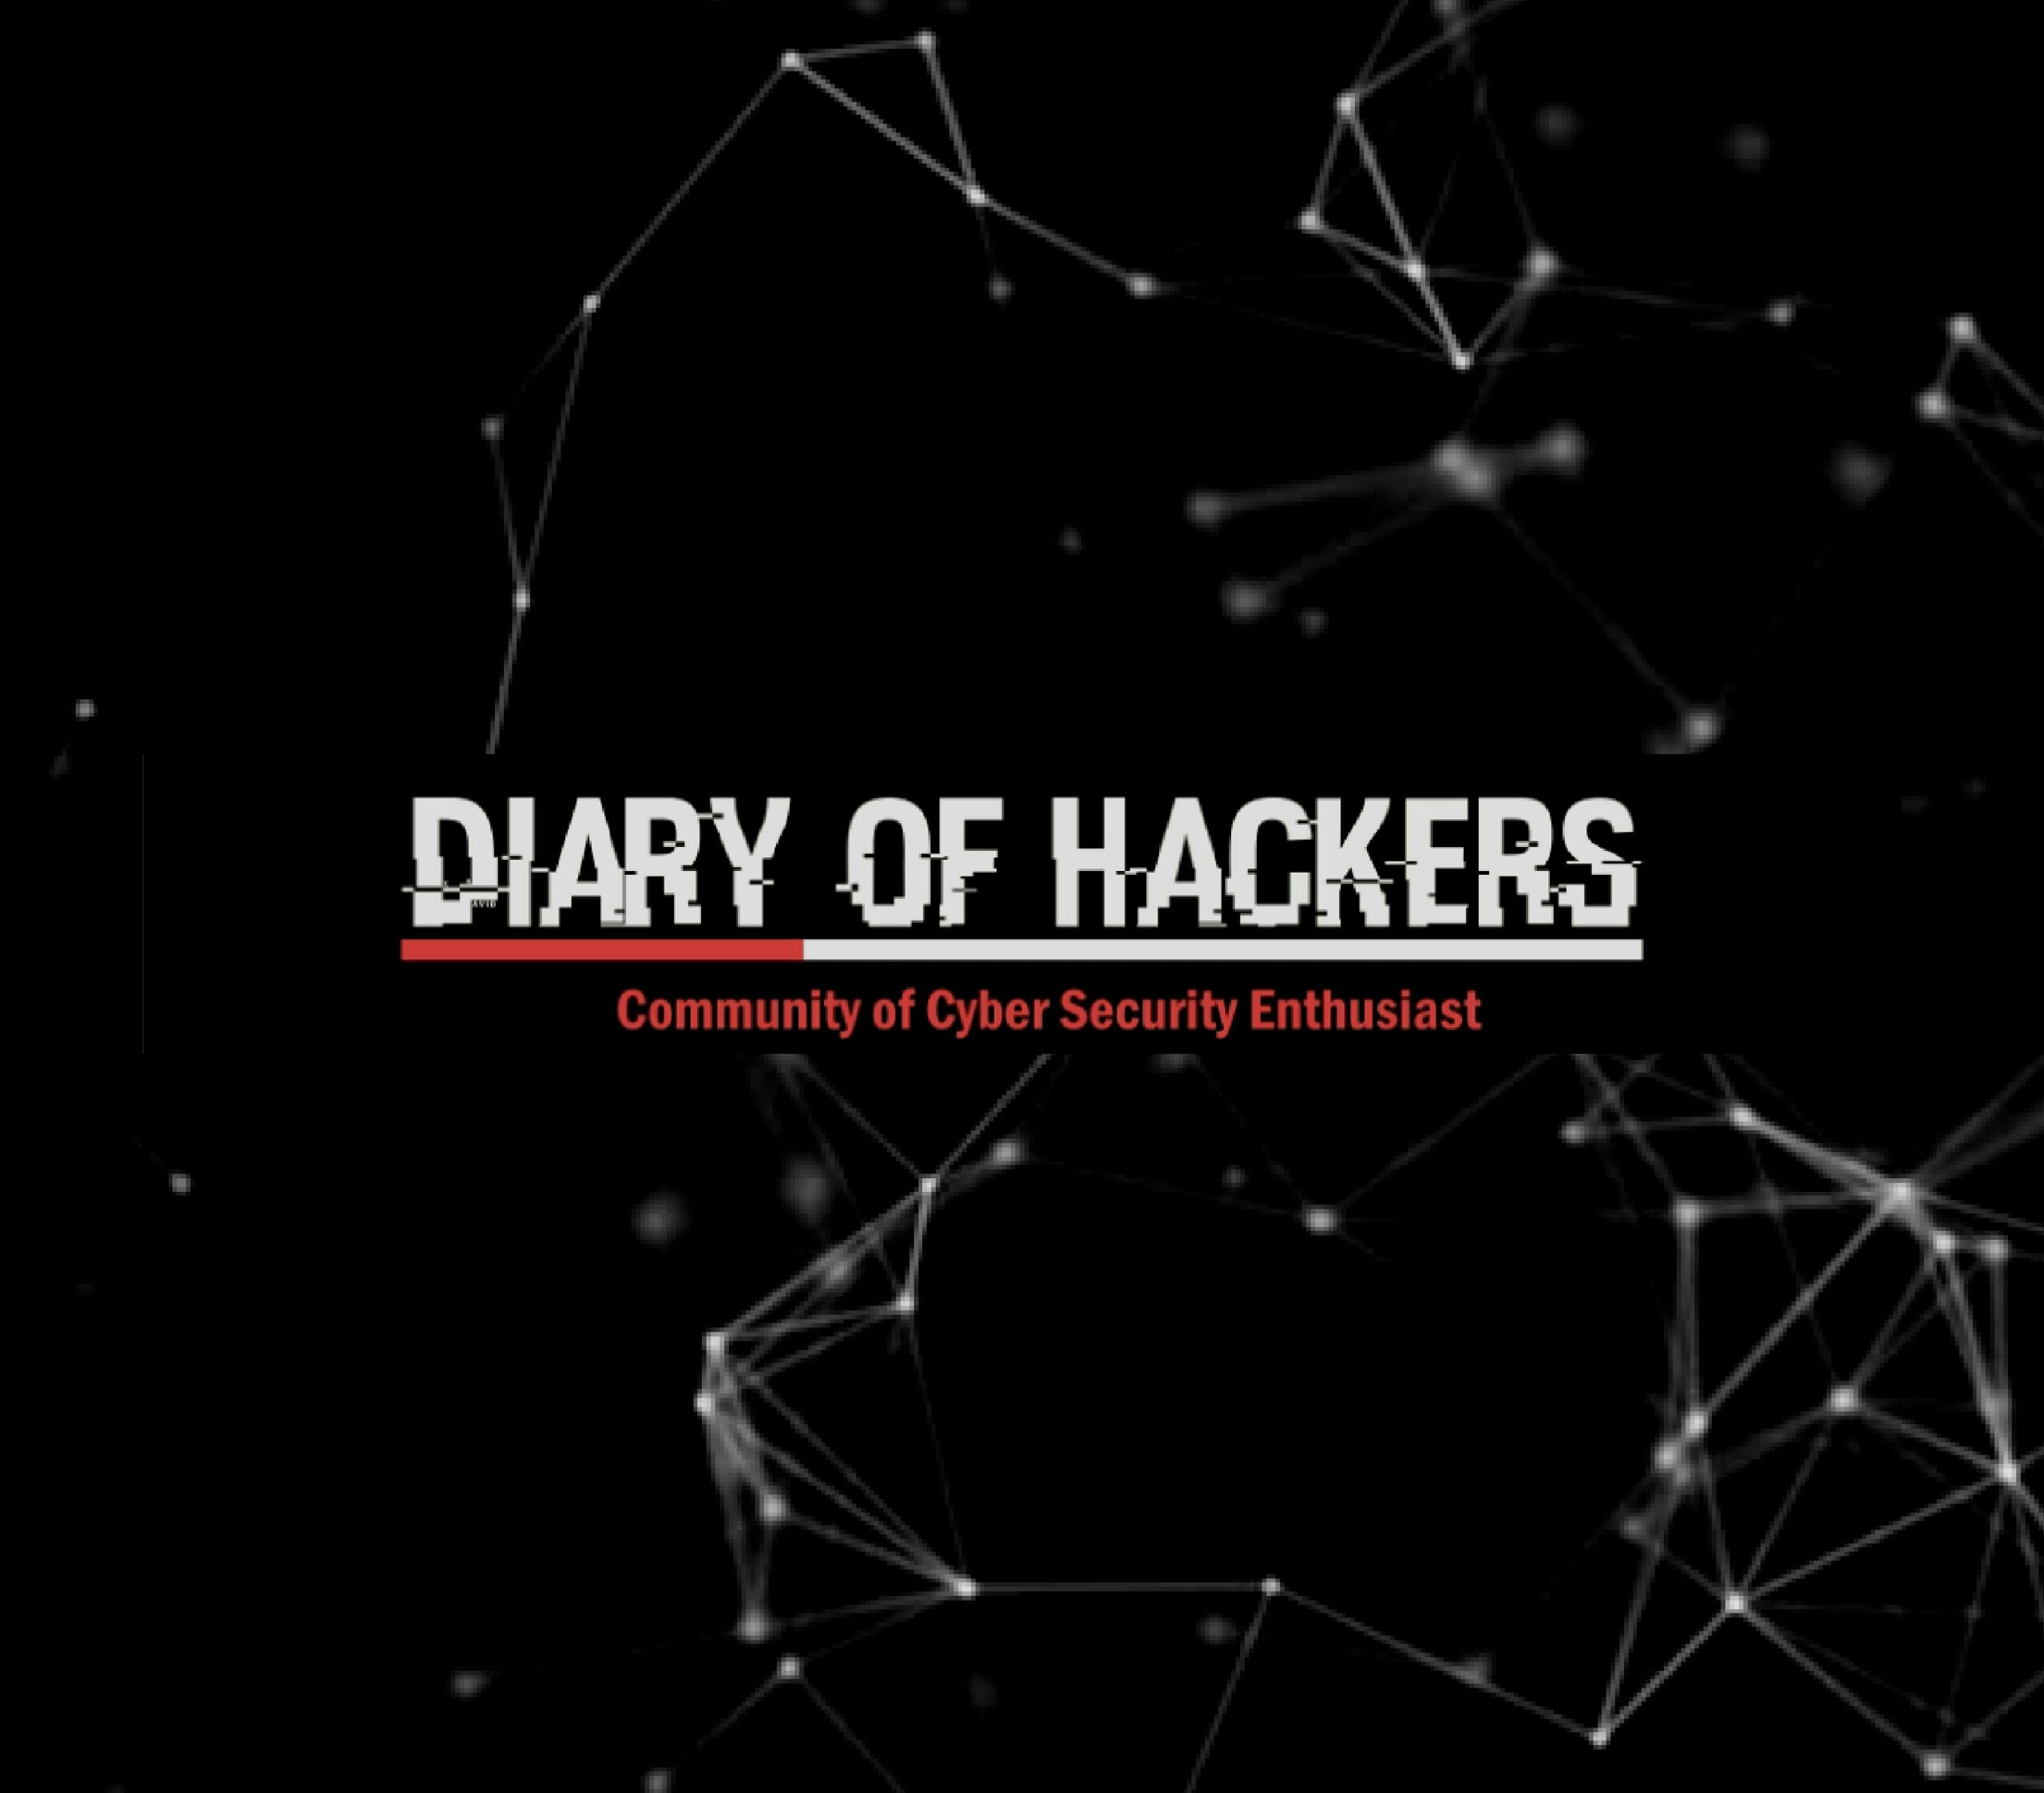 Diary of Hackers